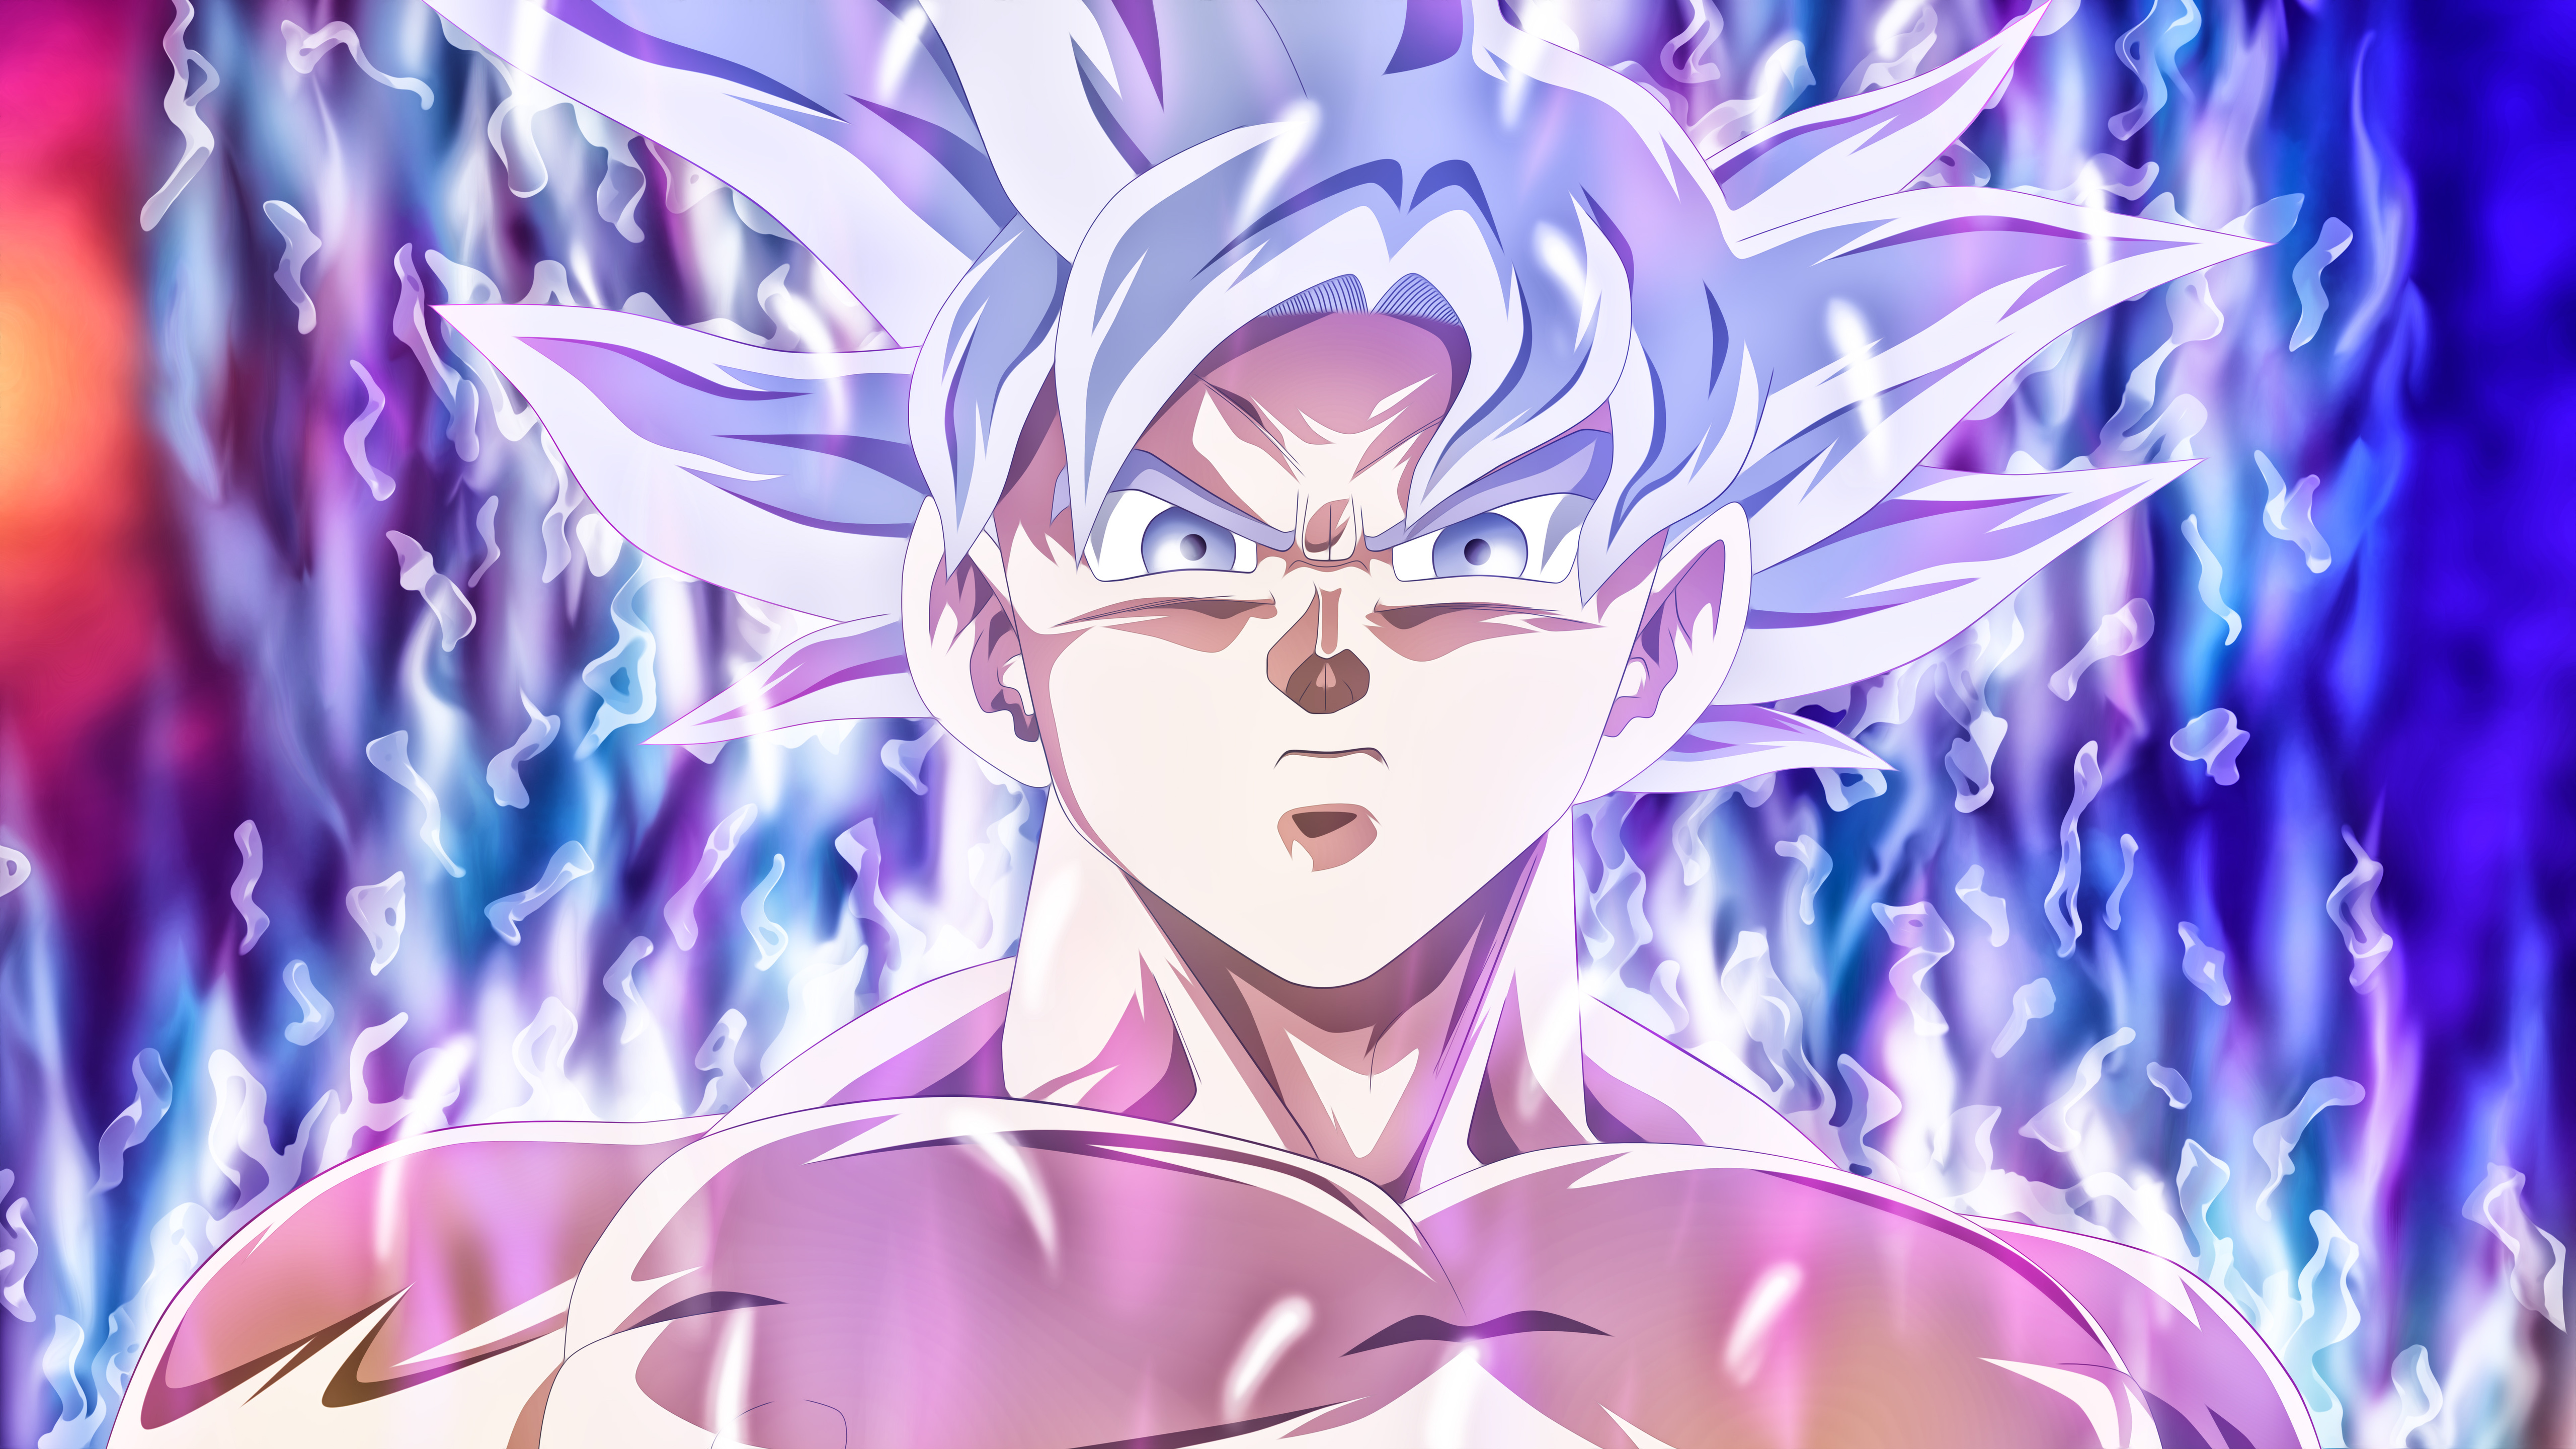 Goku Ultra Instinct Wallpaper 3d 5120x2880 Goku Mastered Ultra Instinct 5k Hd 4k Wallpapers